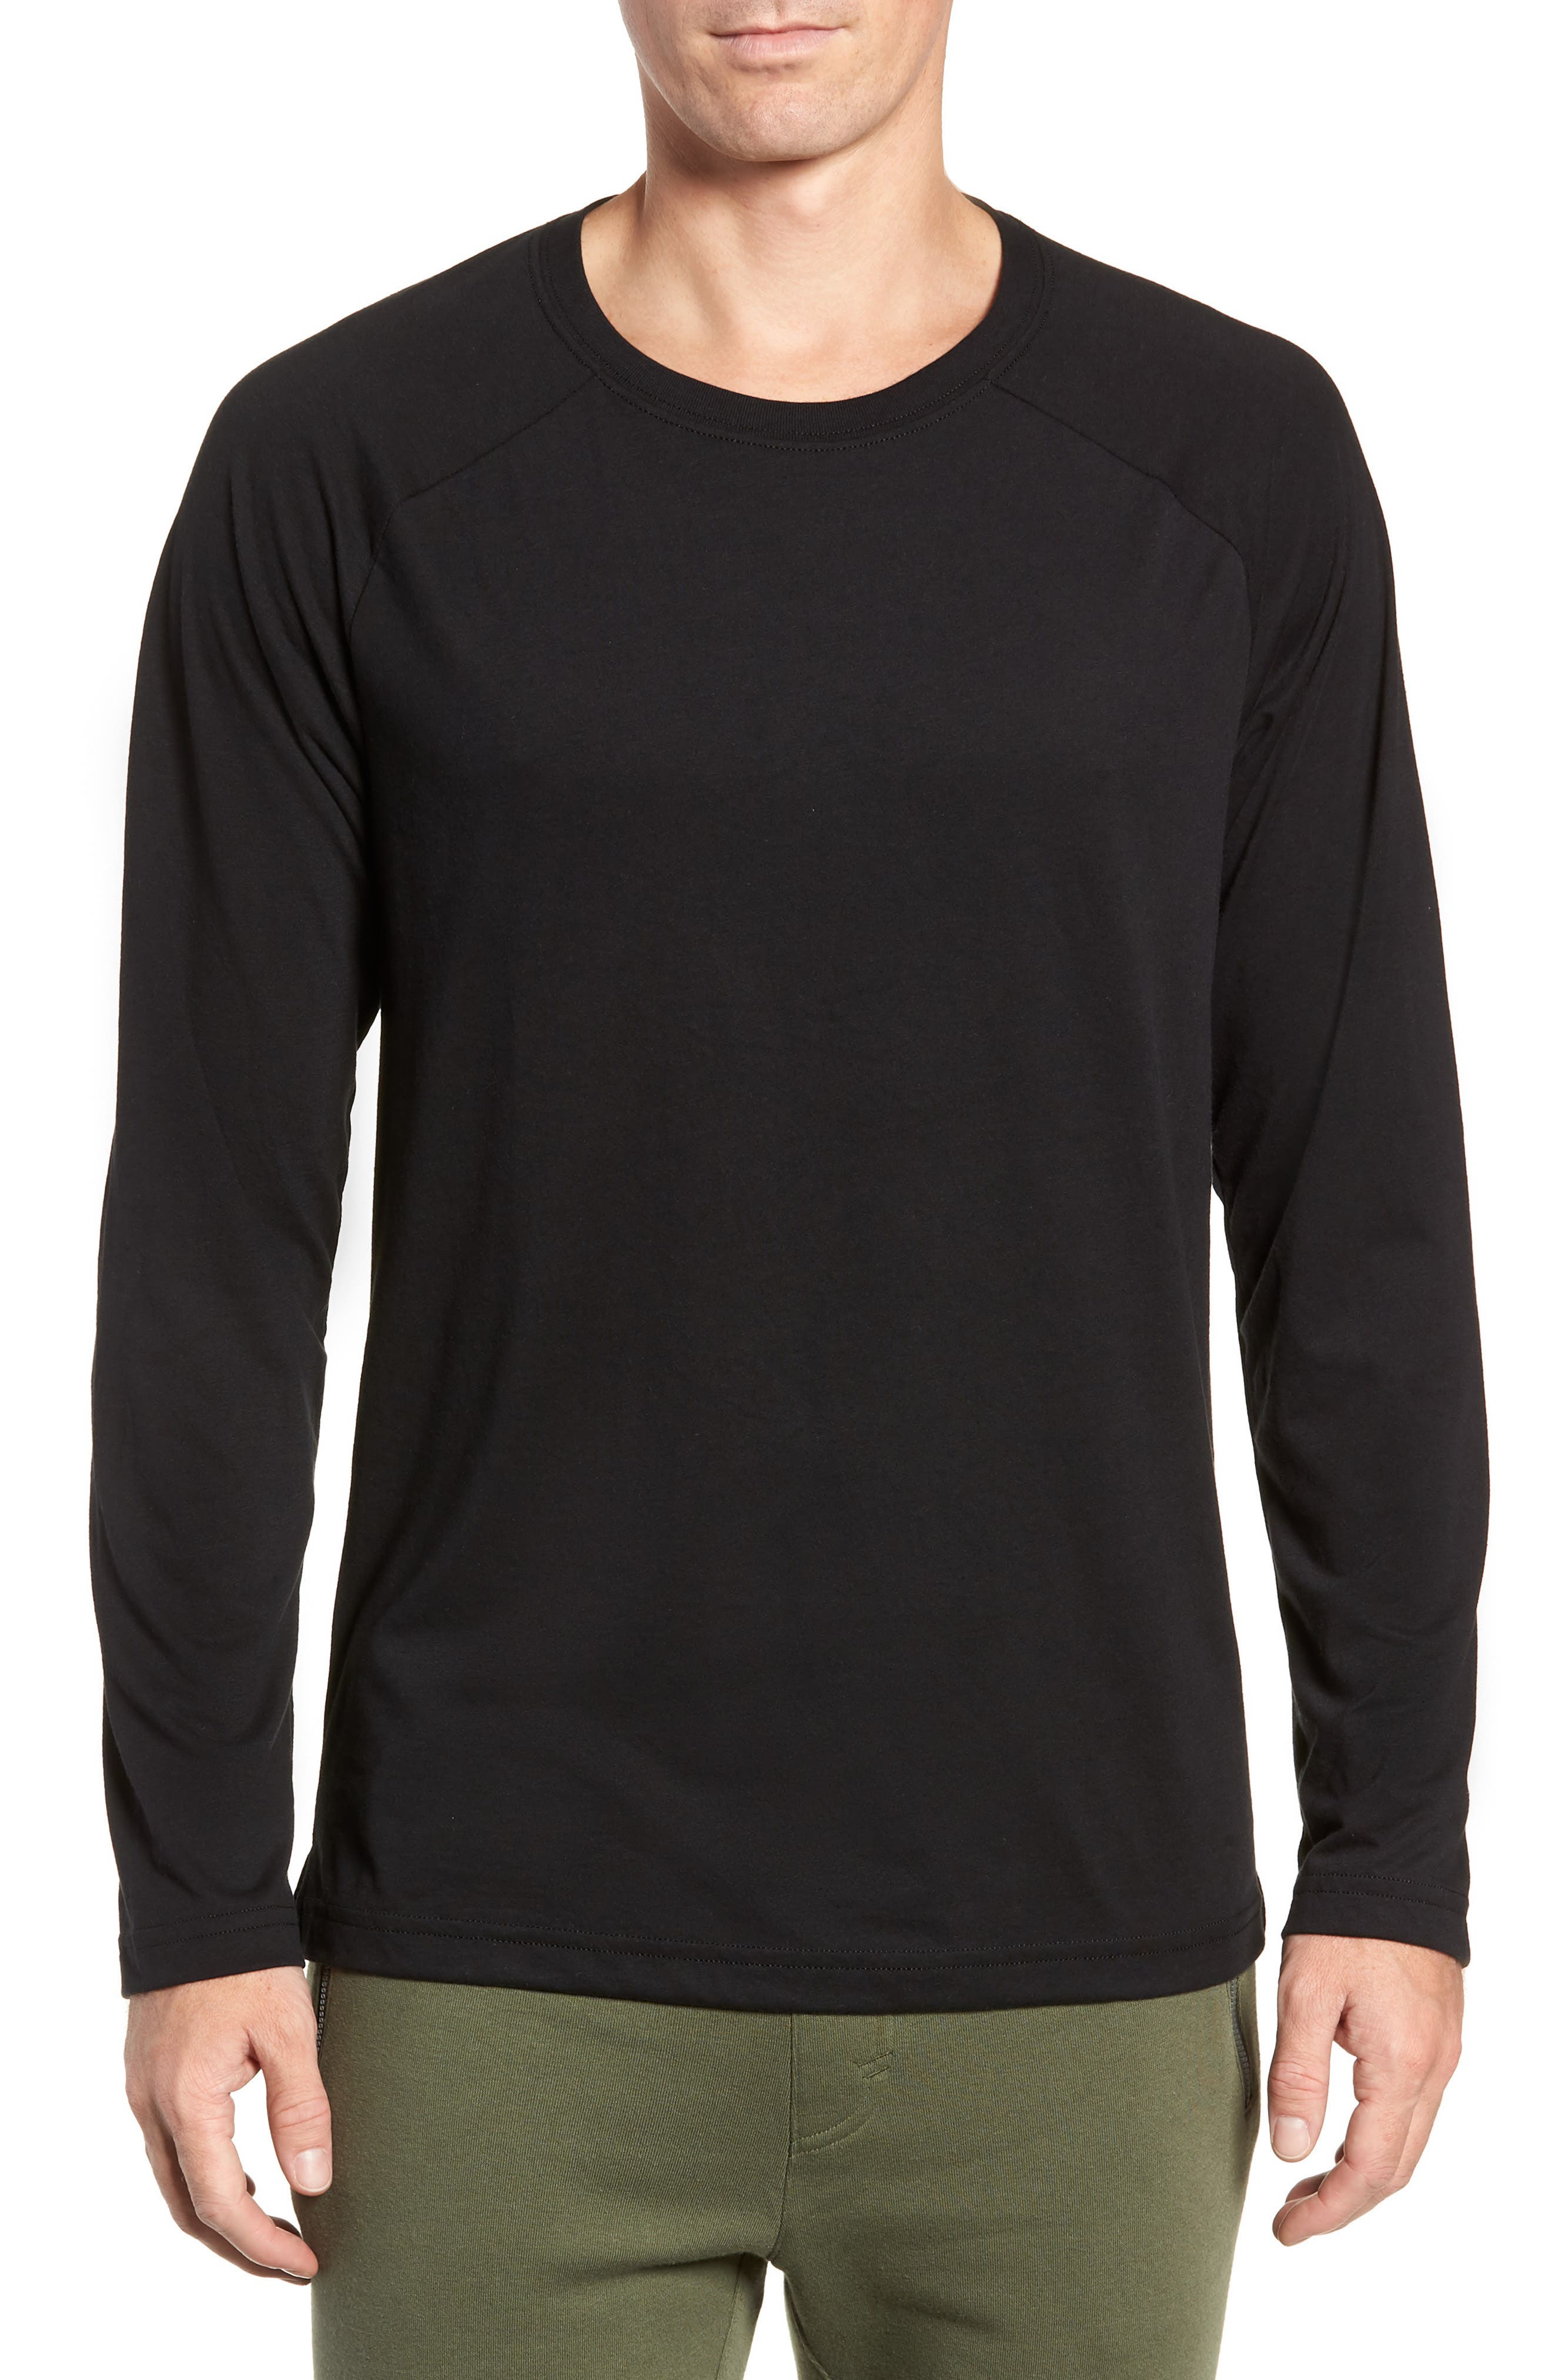 Triumph Raglan Long Sleeve T-Shirt,                         Main,                         color, SOLID BLACK TRIBLEND